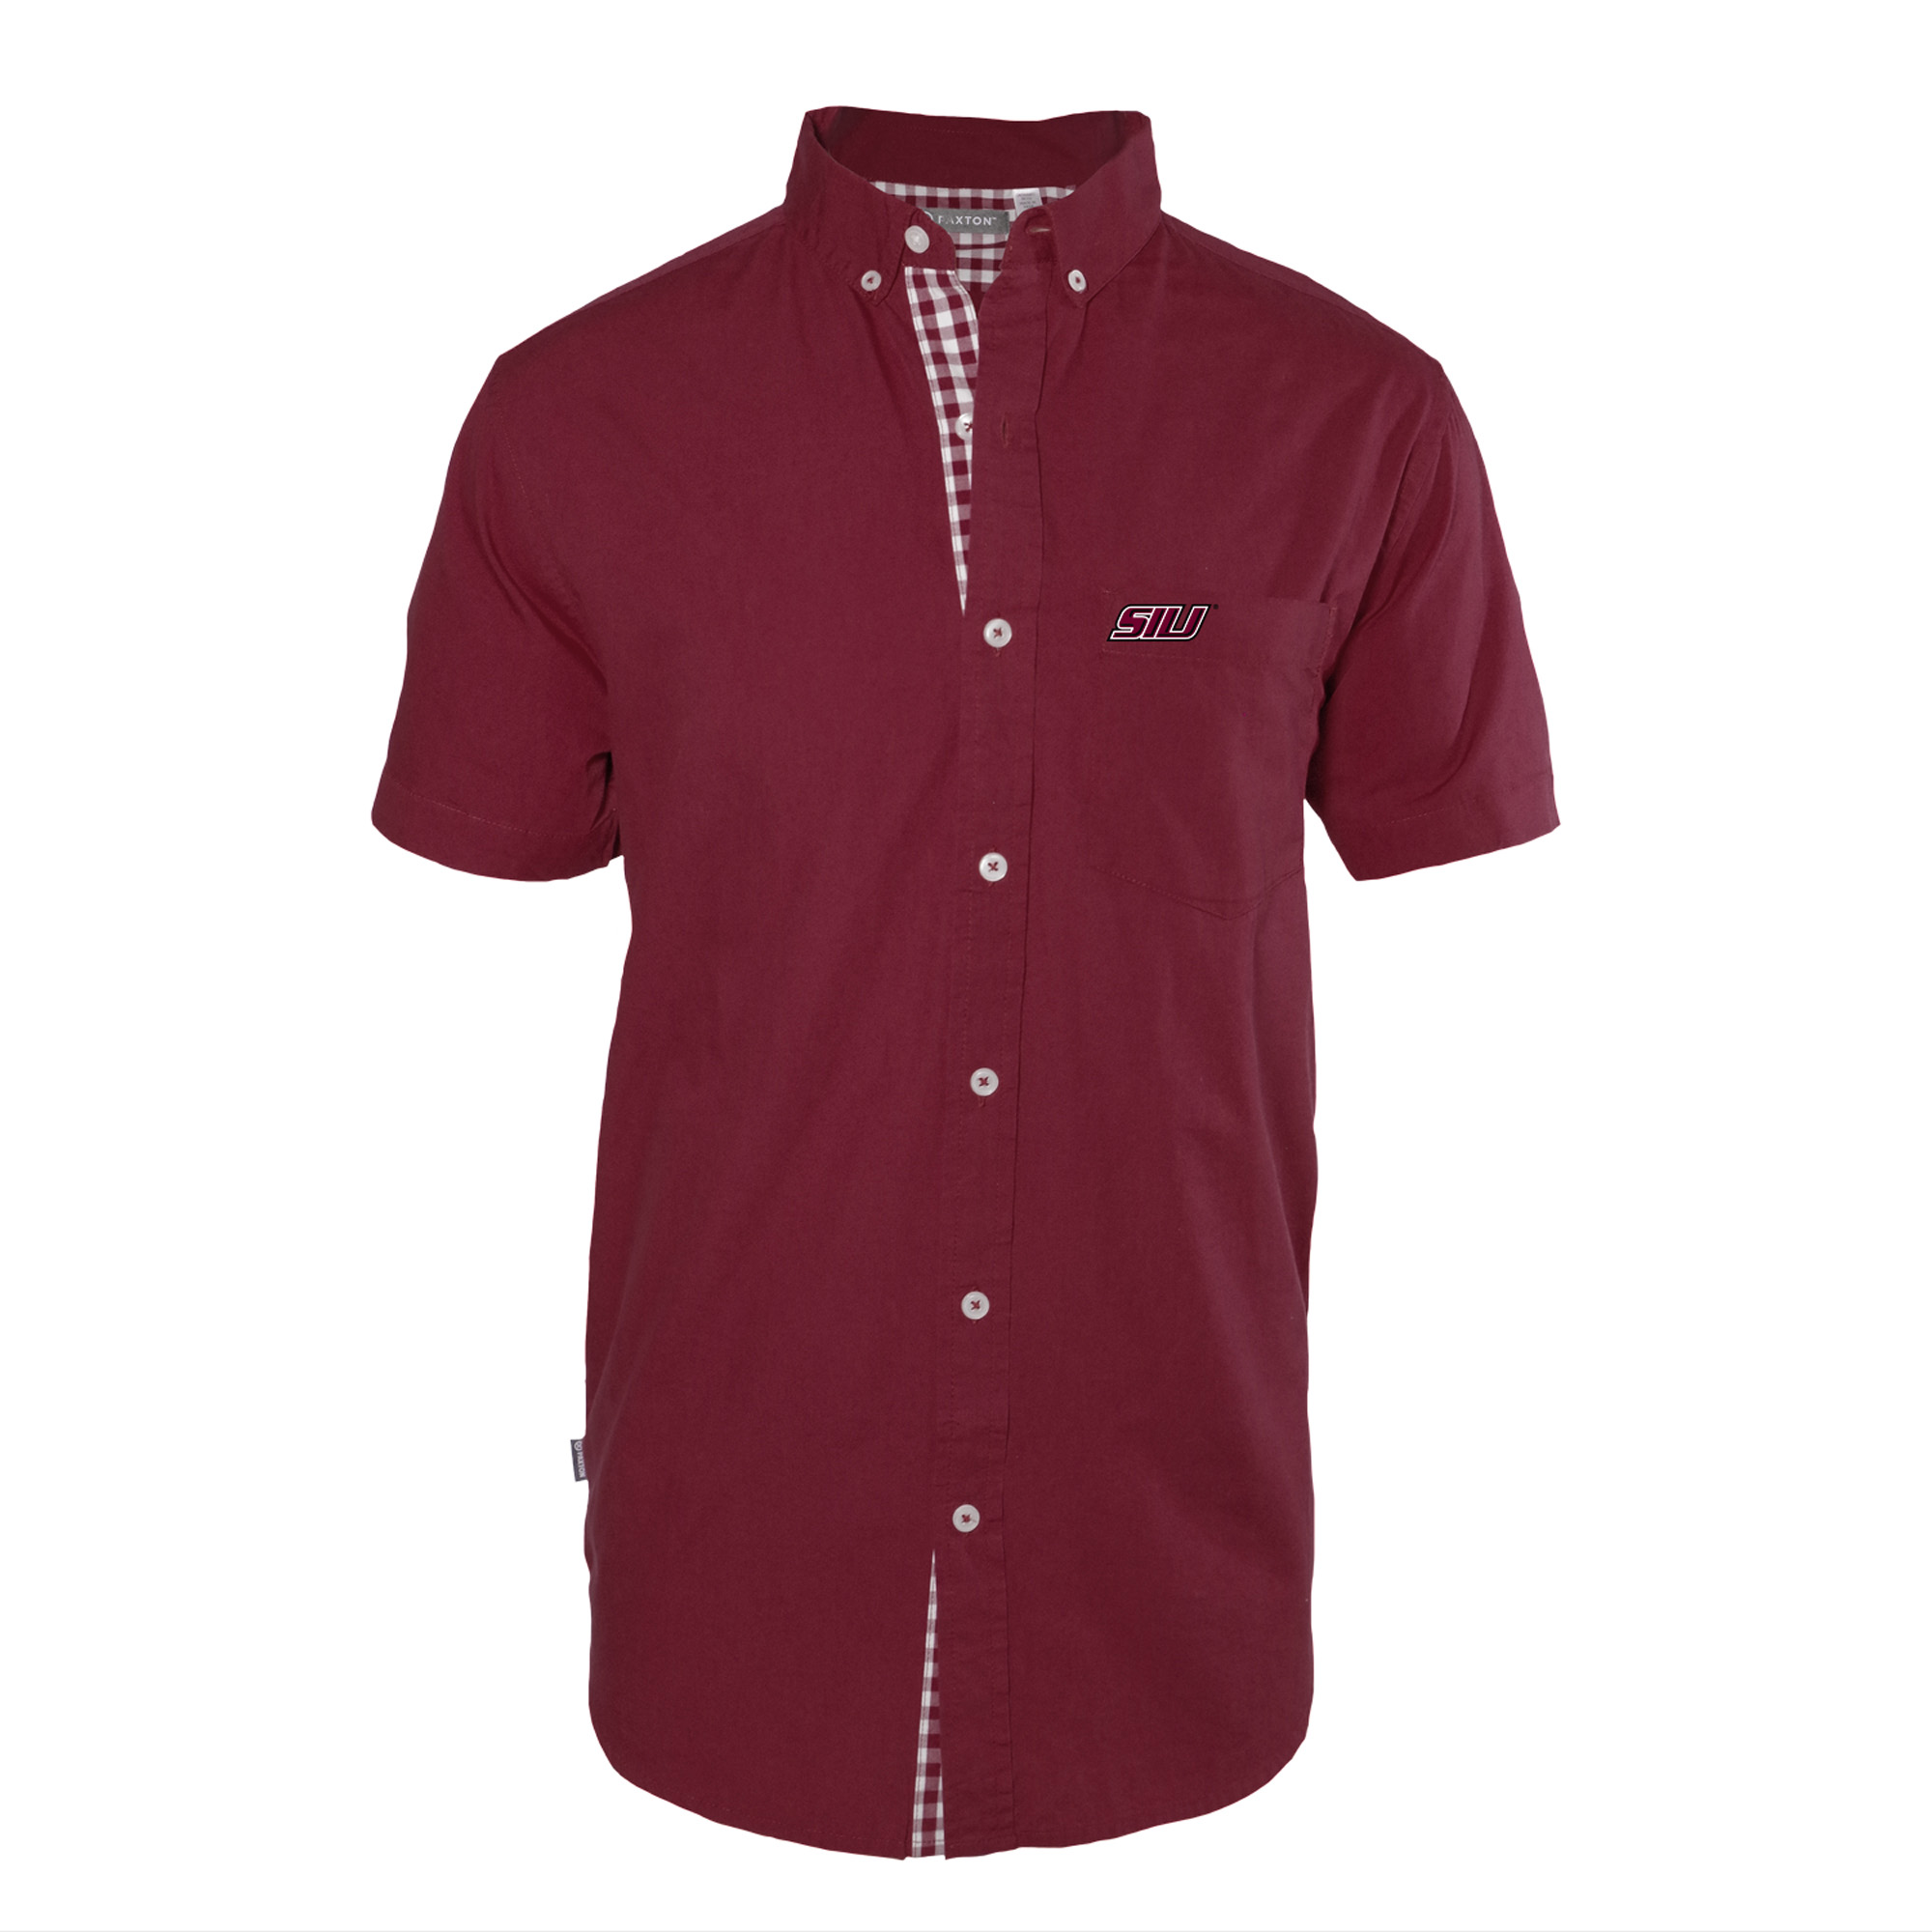 Image for the PAXTON® BIERSTADT SIU ACCENTED BUTTON DOWN SHORT SLEEVE product